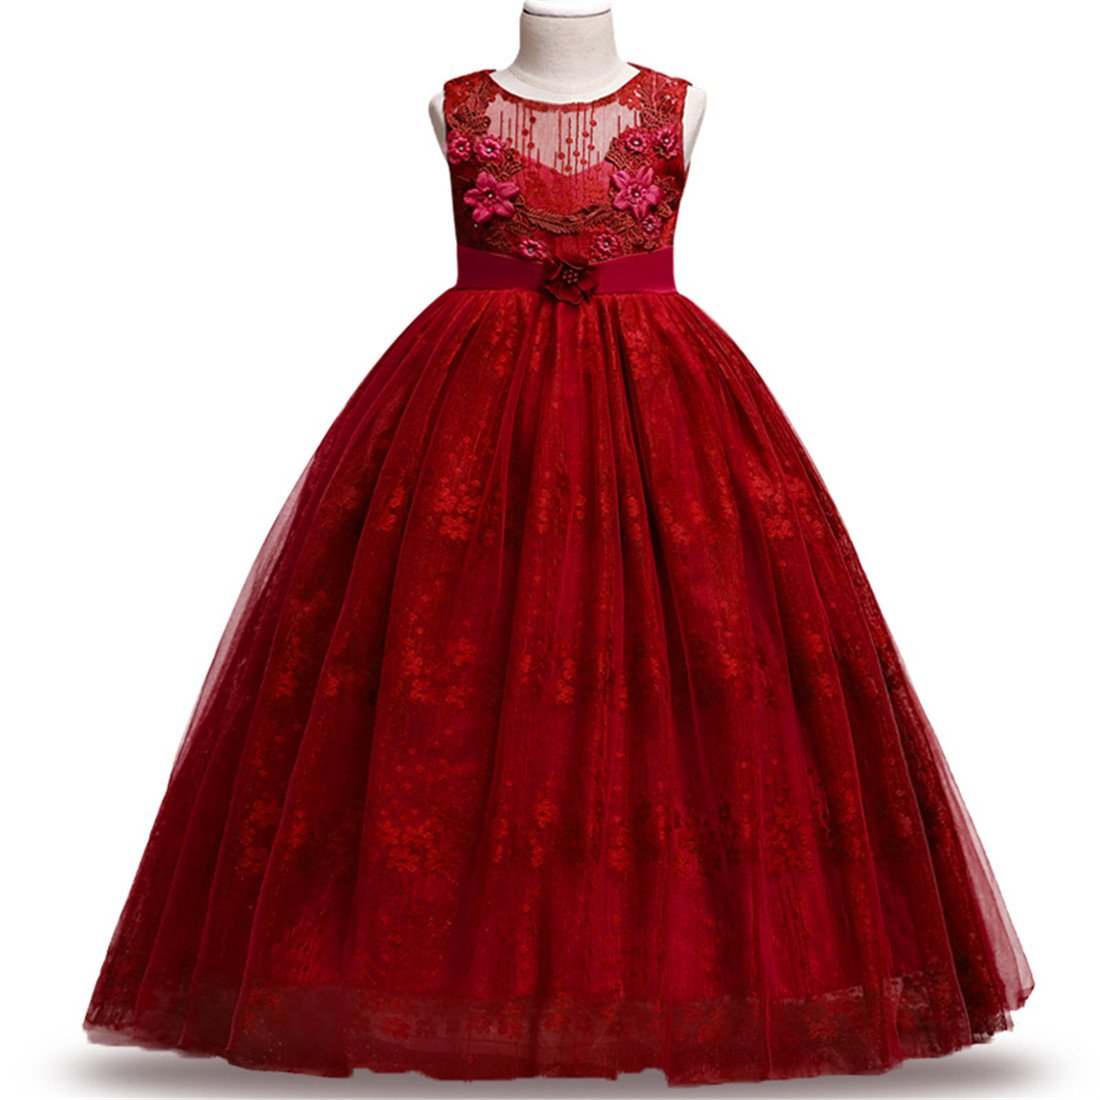 c6e80c3fec1c3 Big Girls Formal Dresses Size 9-10 Lace Princess Special Occasion Dress  Sleeveless Red Christmas Wedding Holiday Party Girl Dress 10 Years Old  Elegant Tulle ...